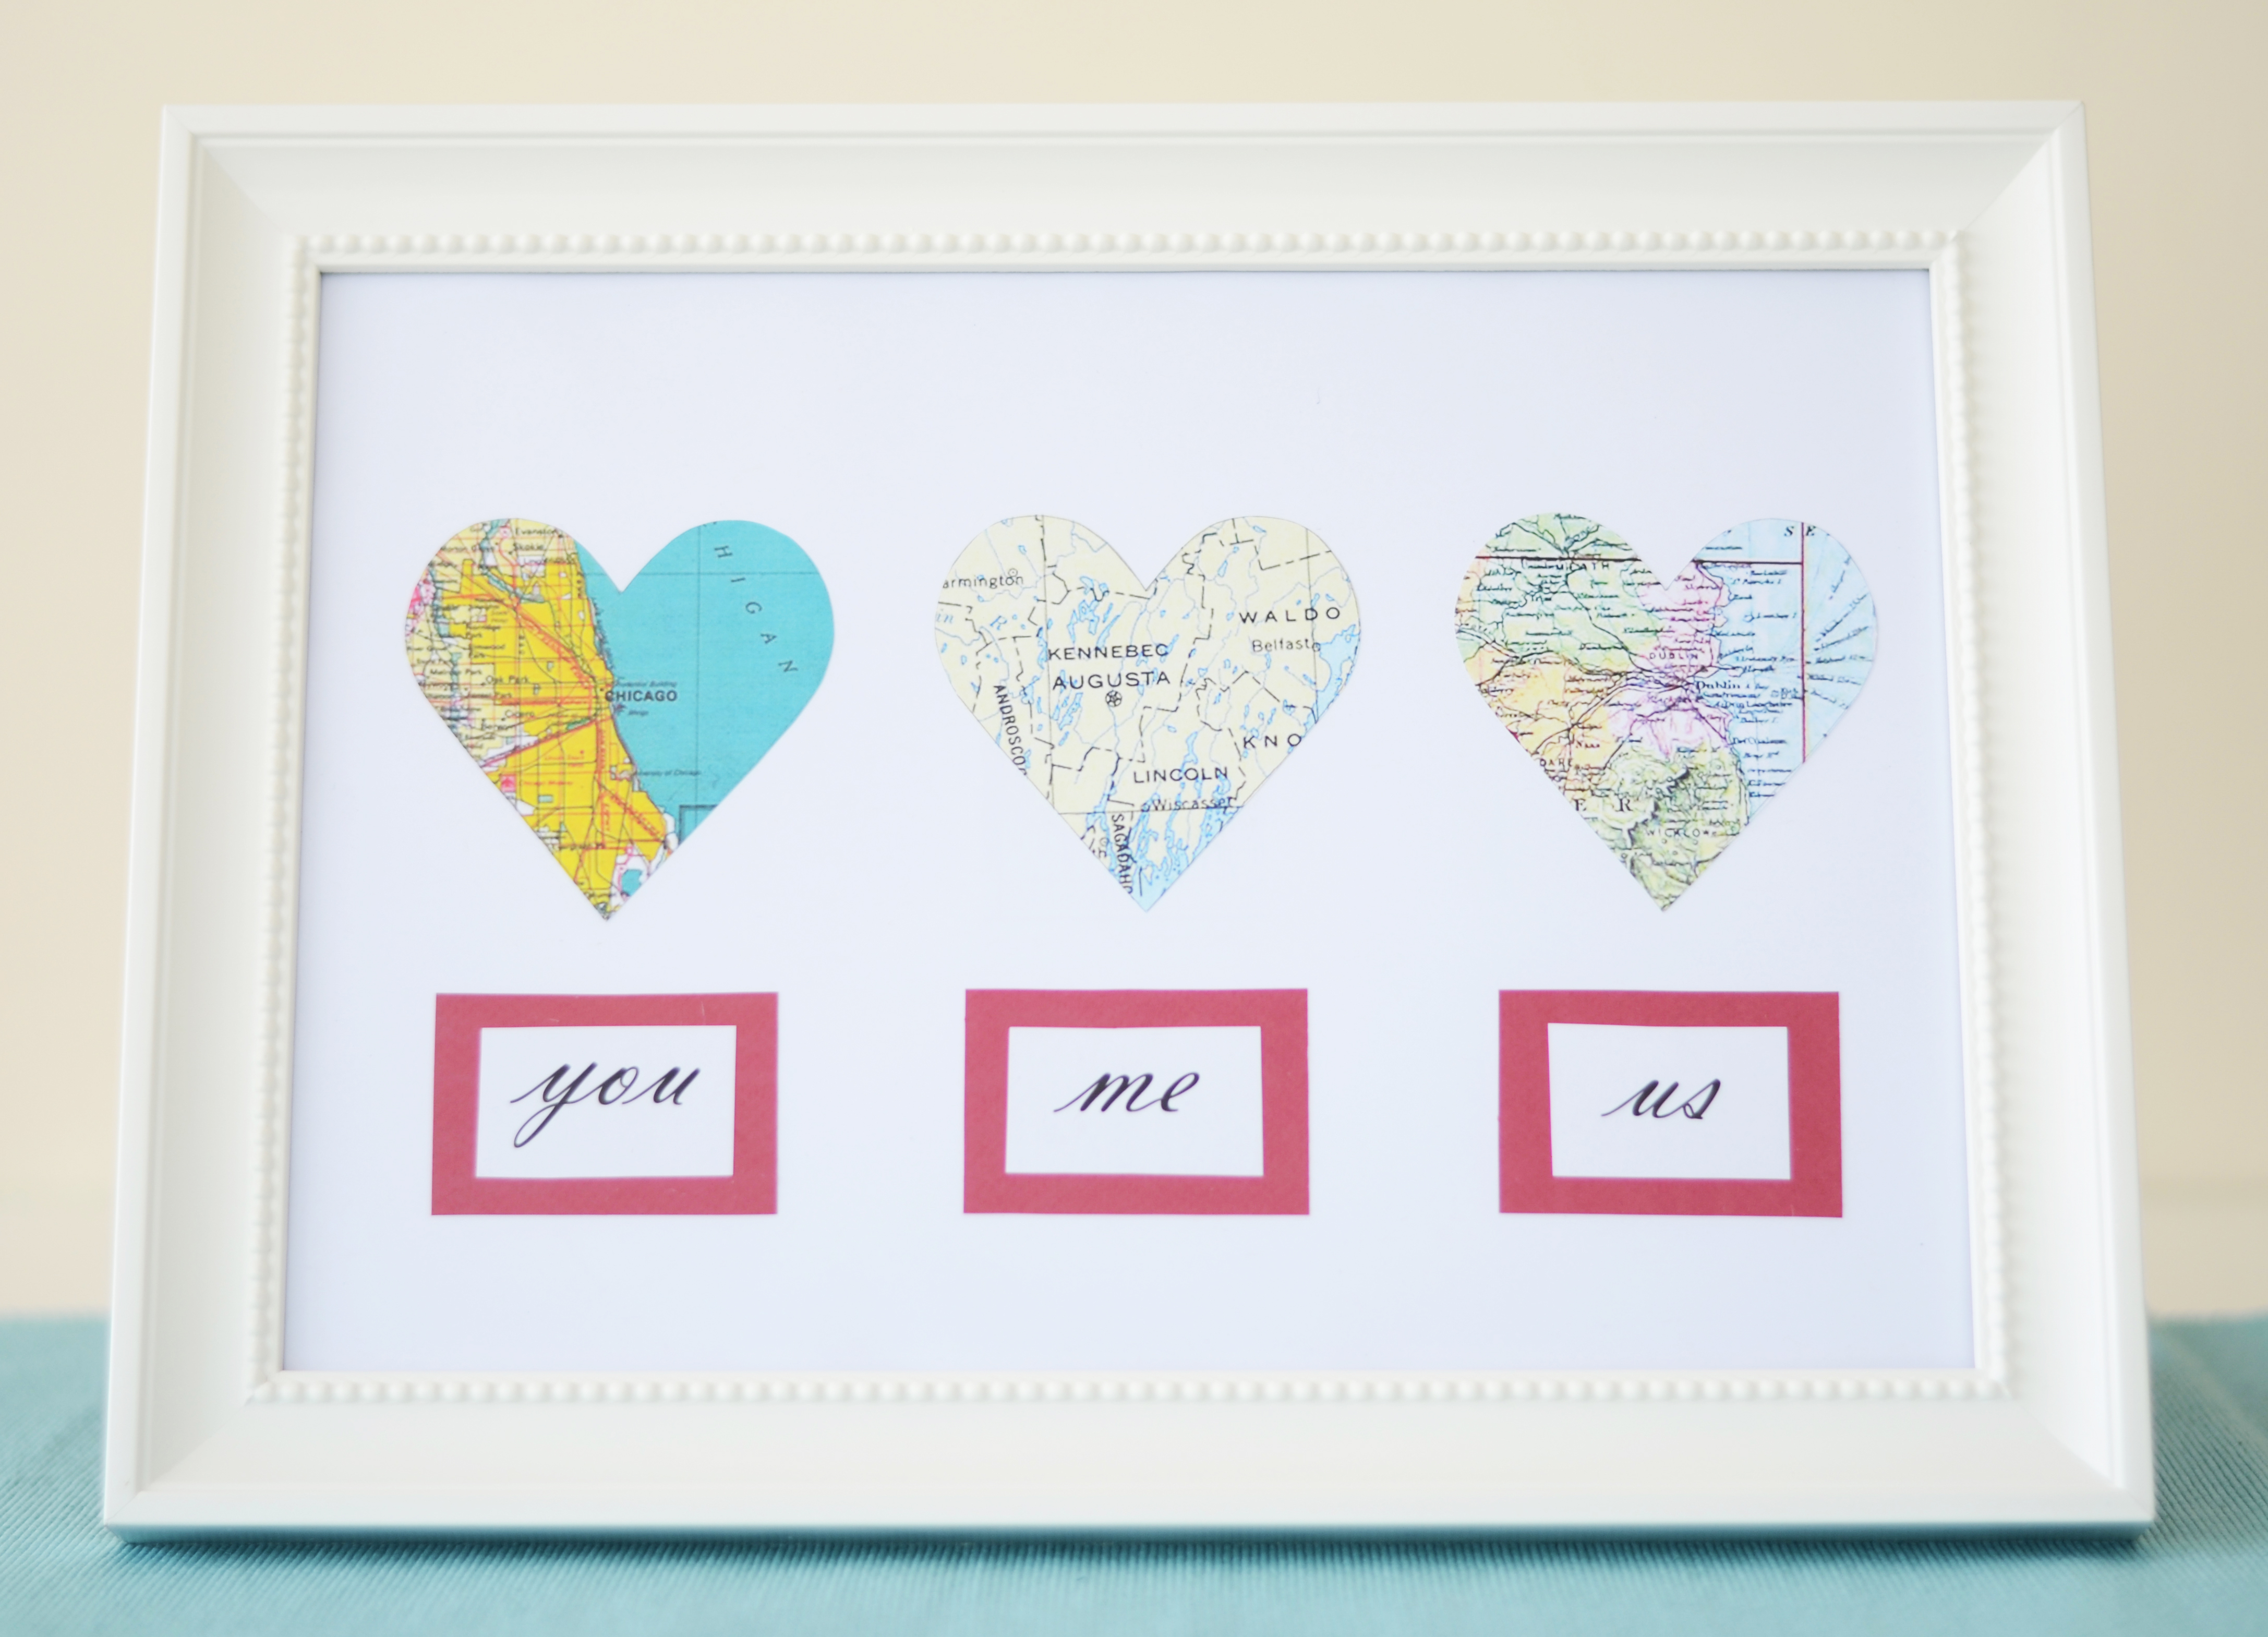 Wedding Gifts For Parents Ireland : Valentines DIY Map Hearts and My Irish Ancestry - From China Village